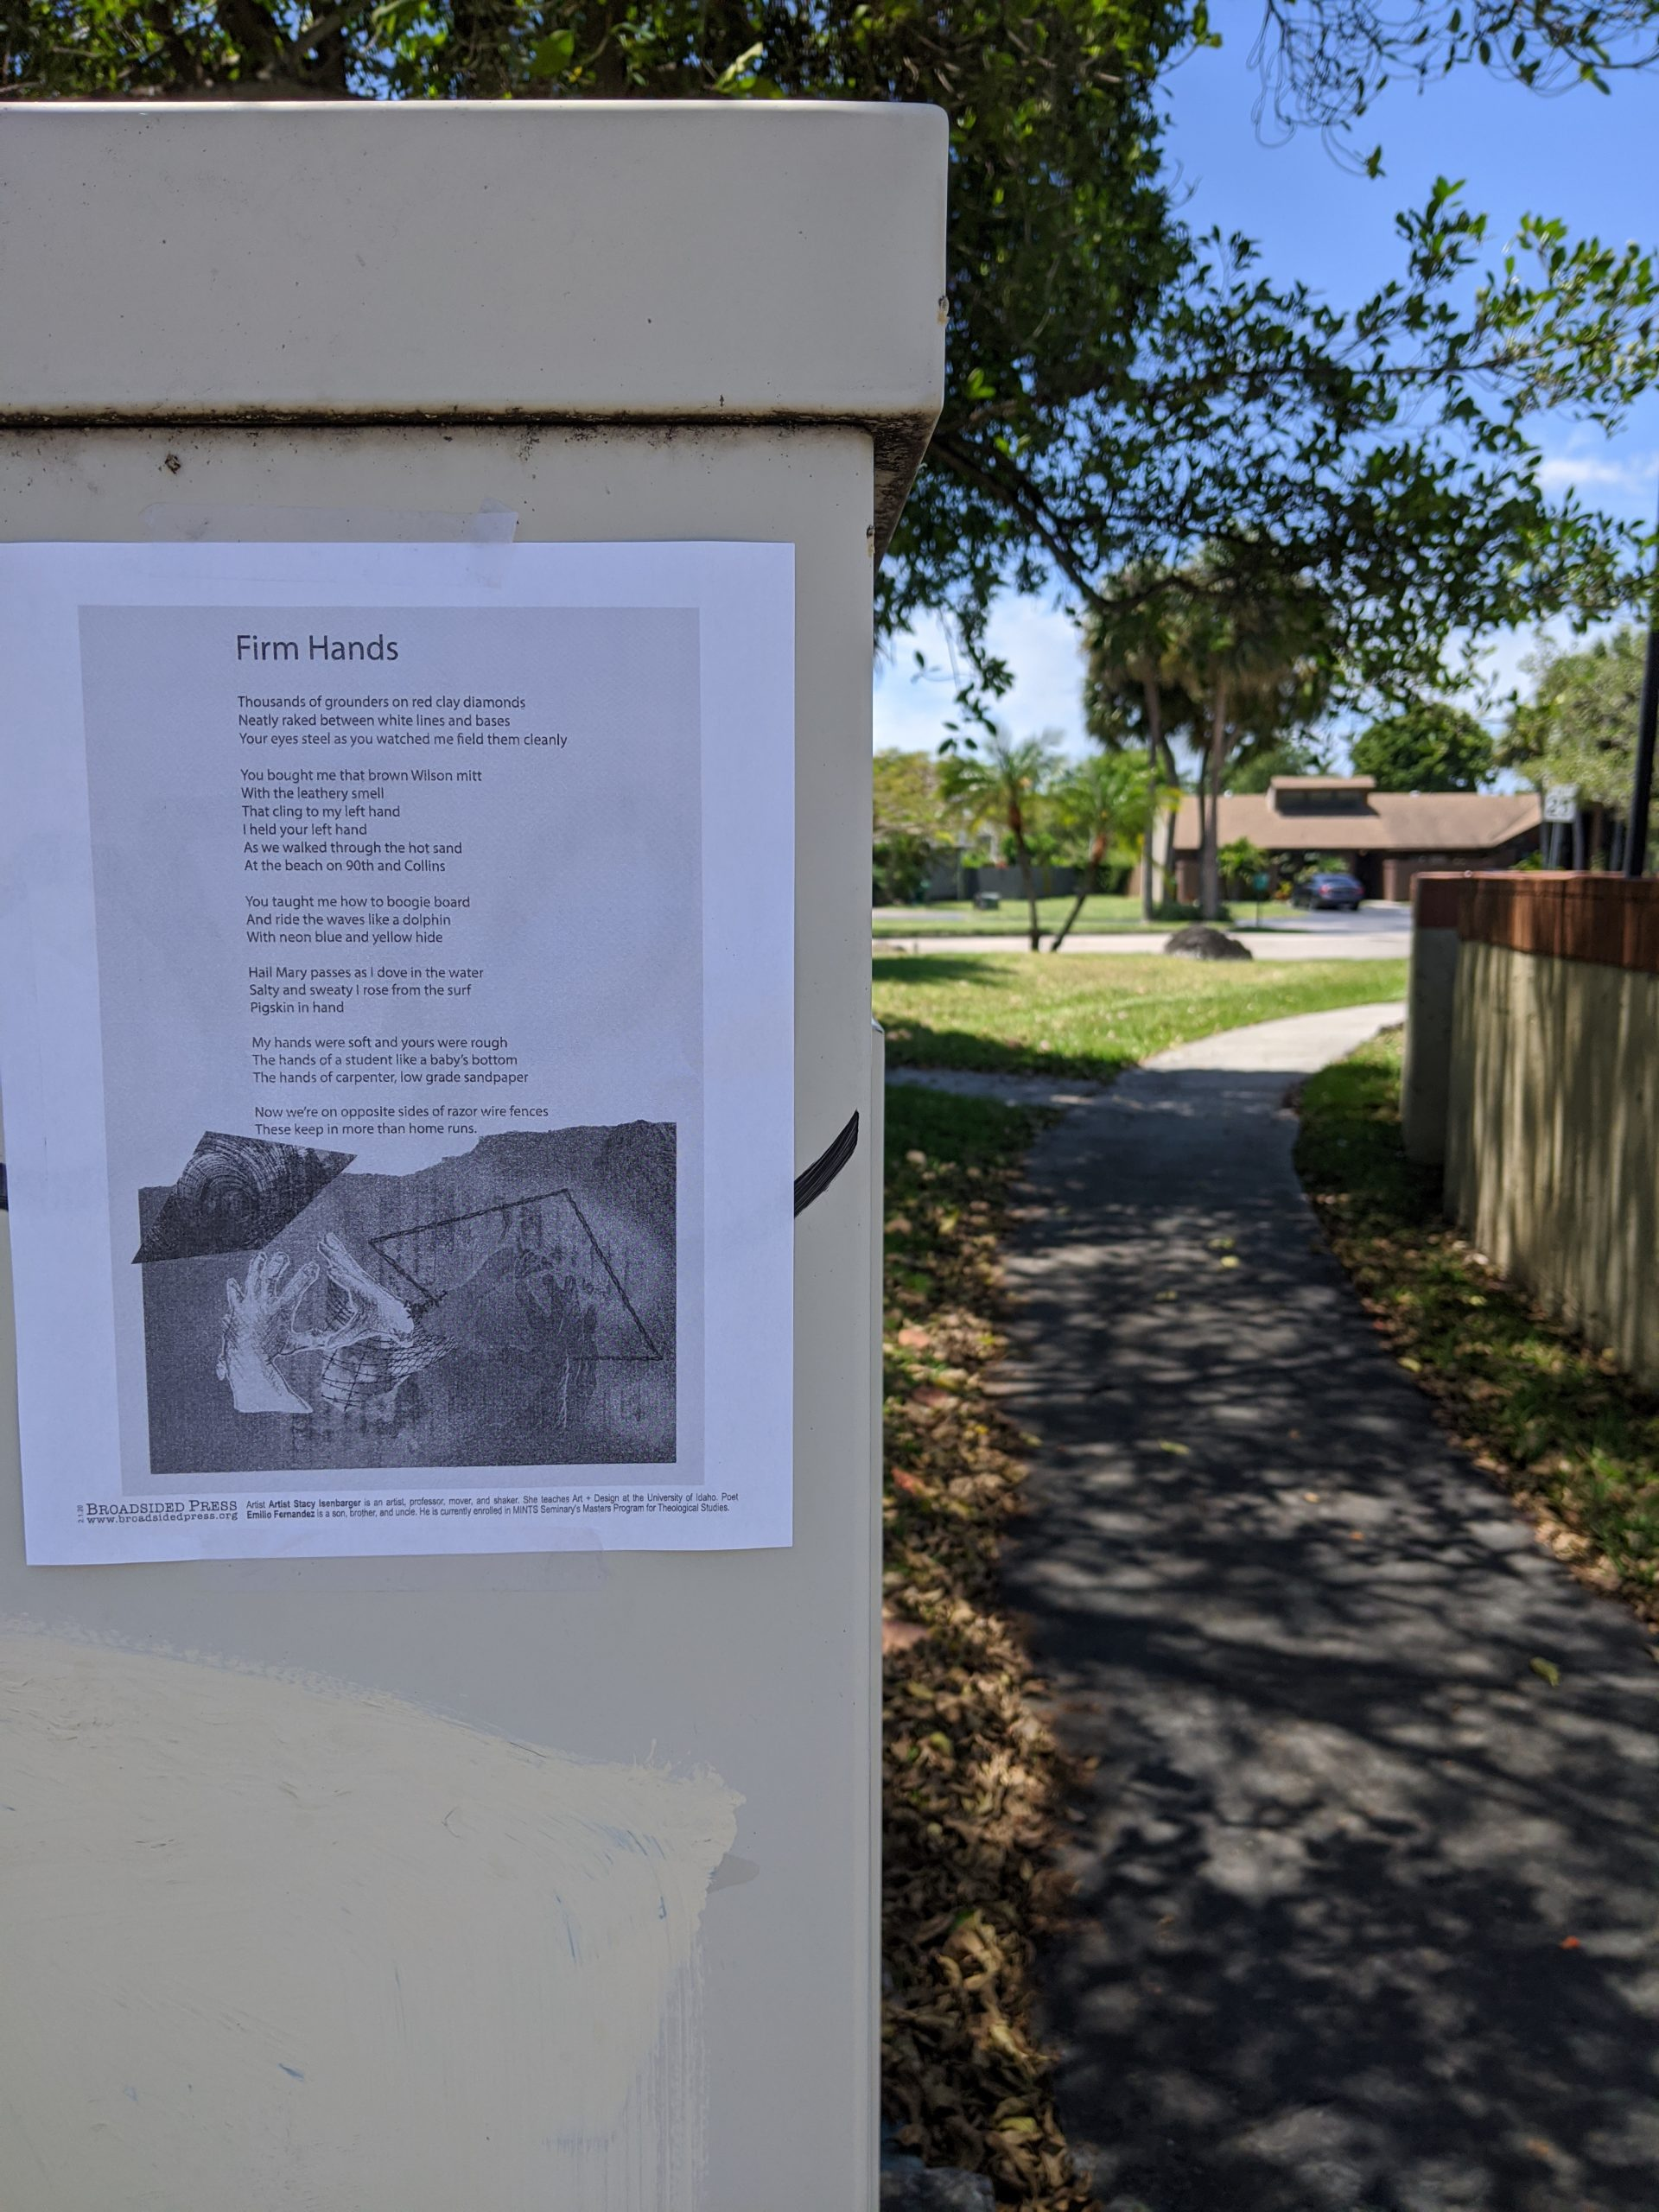 The broadside posted by George Franklin on a walk path.